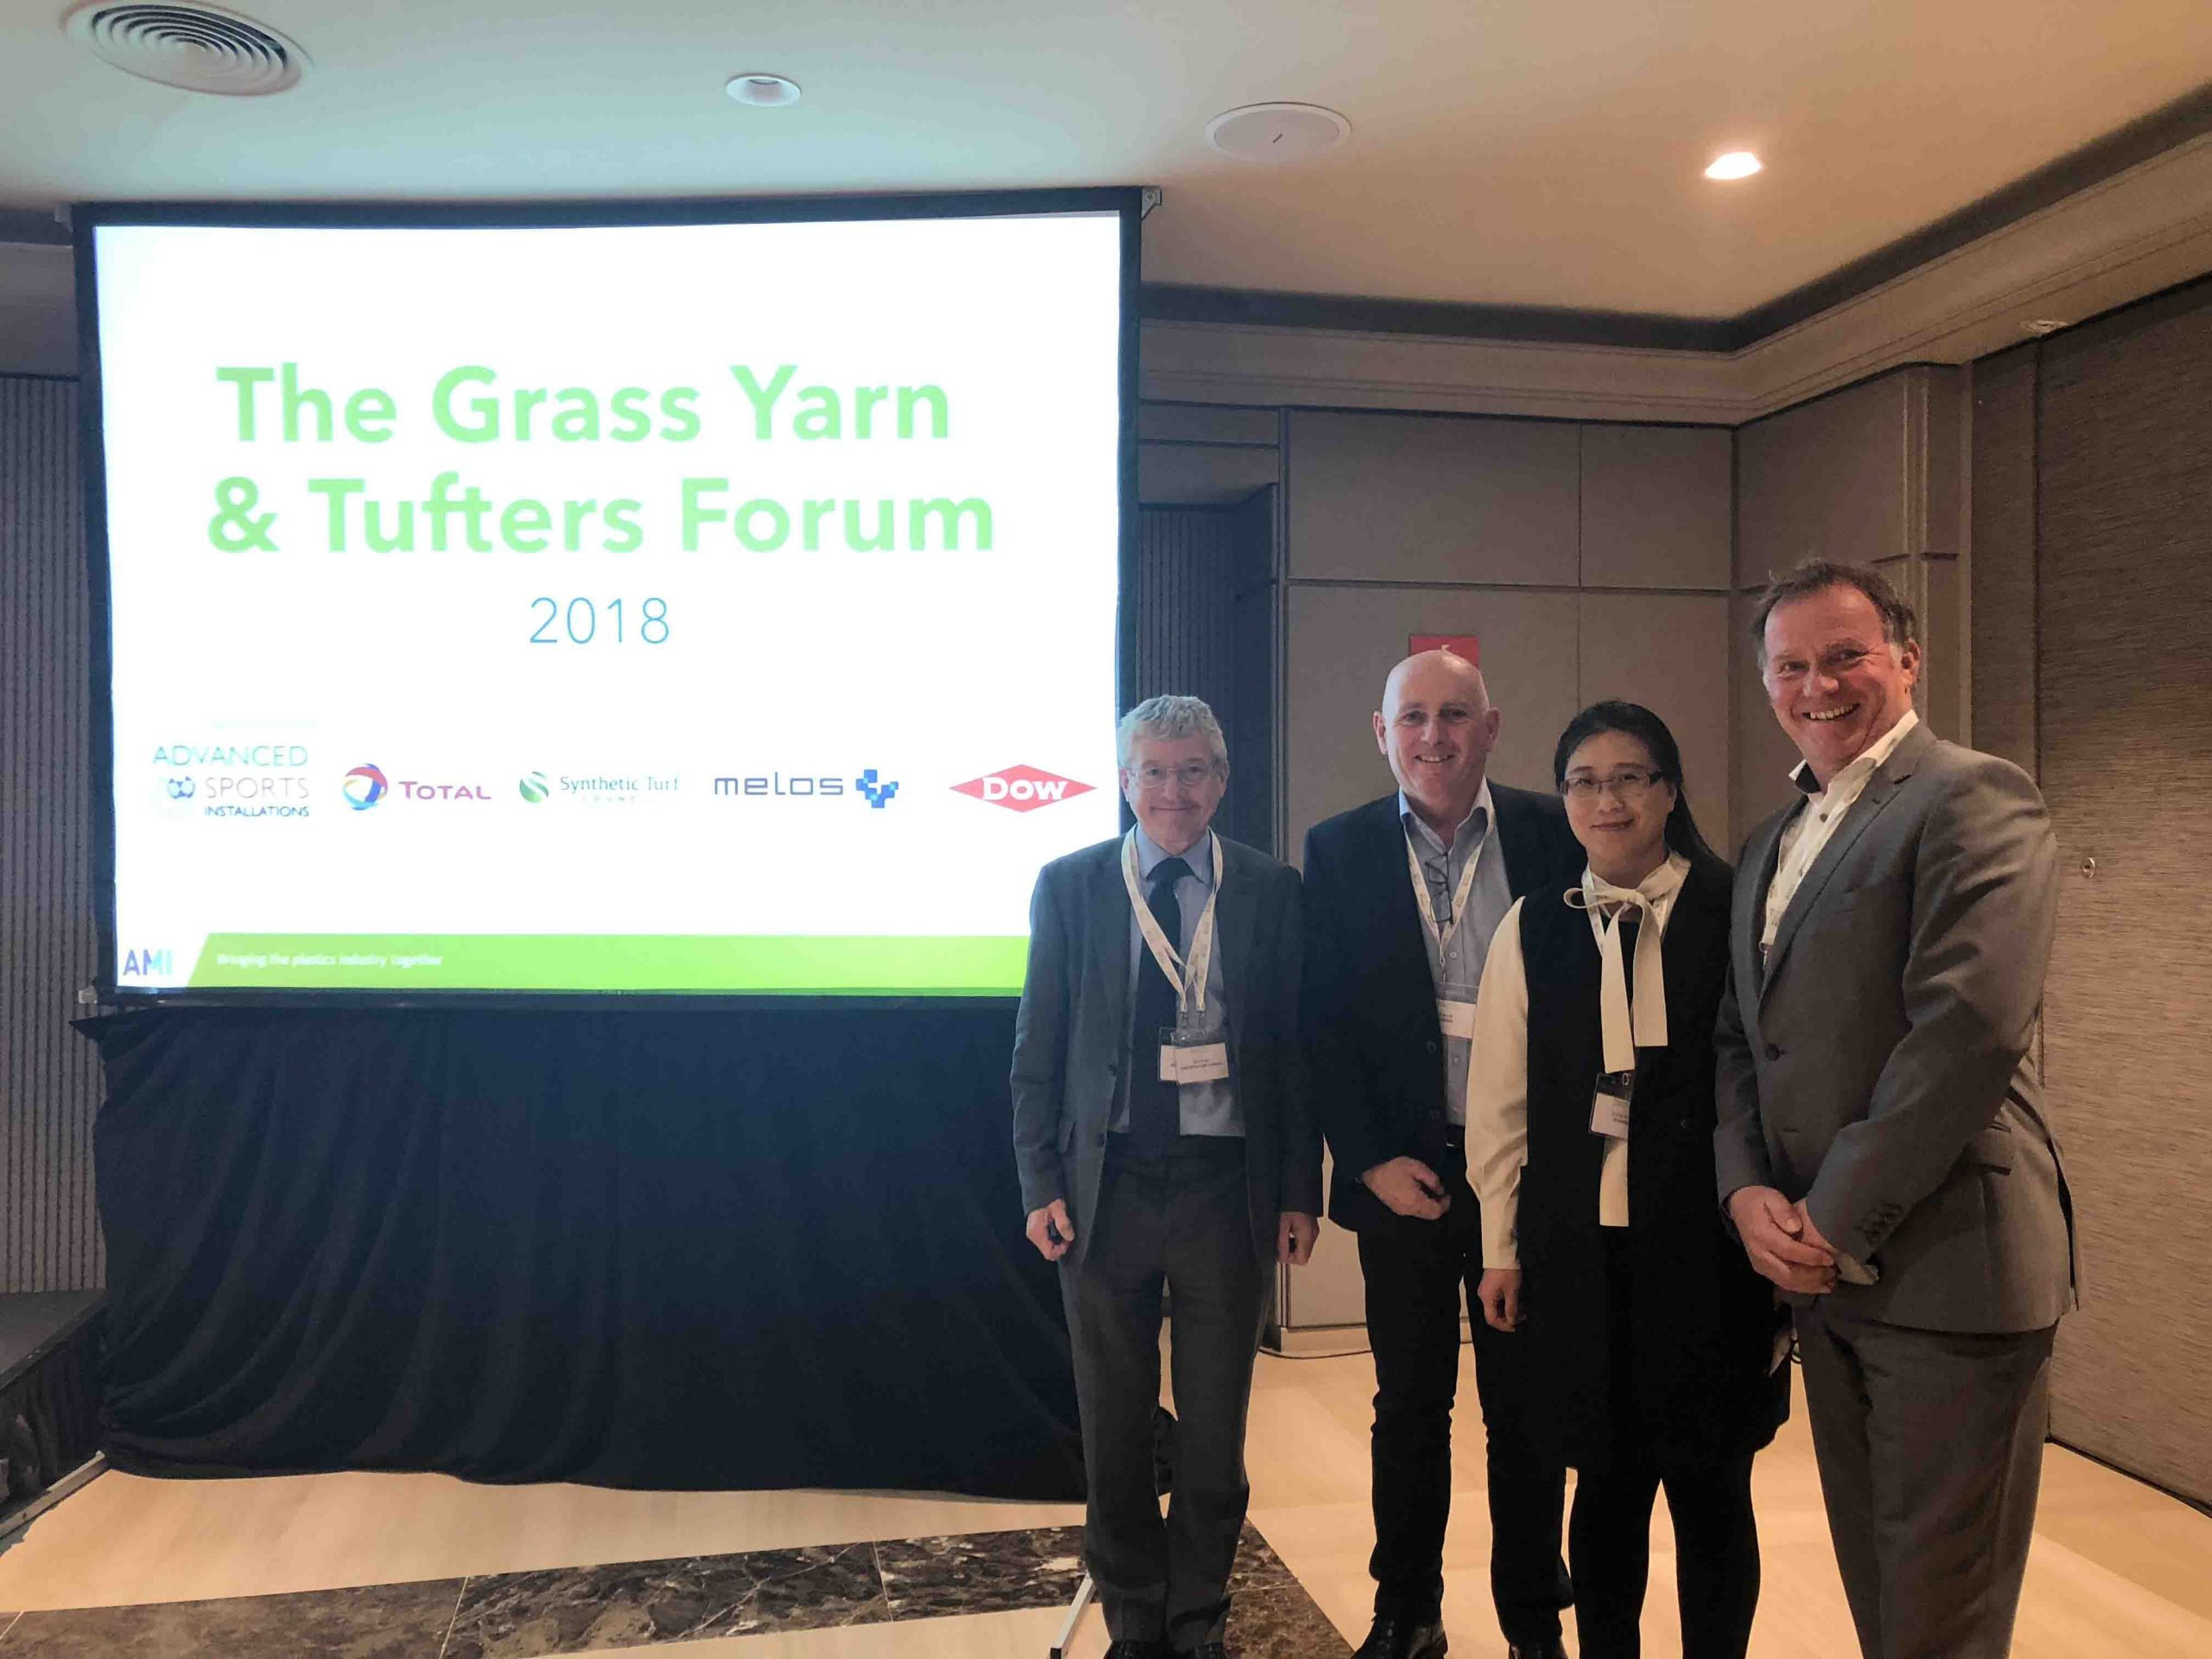 CCGrass artificial grass manufacturer at AMI Grass Yarn & Tufters Forum 2018 Barcelona